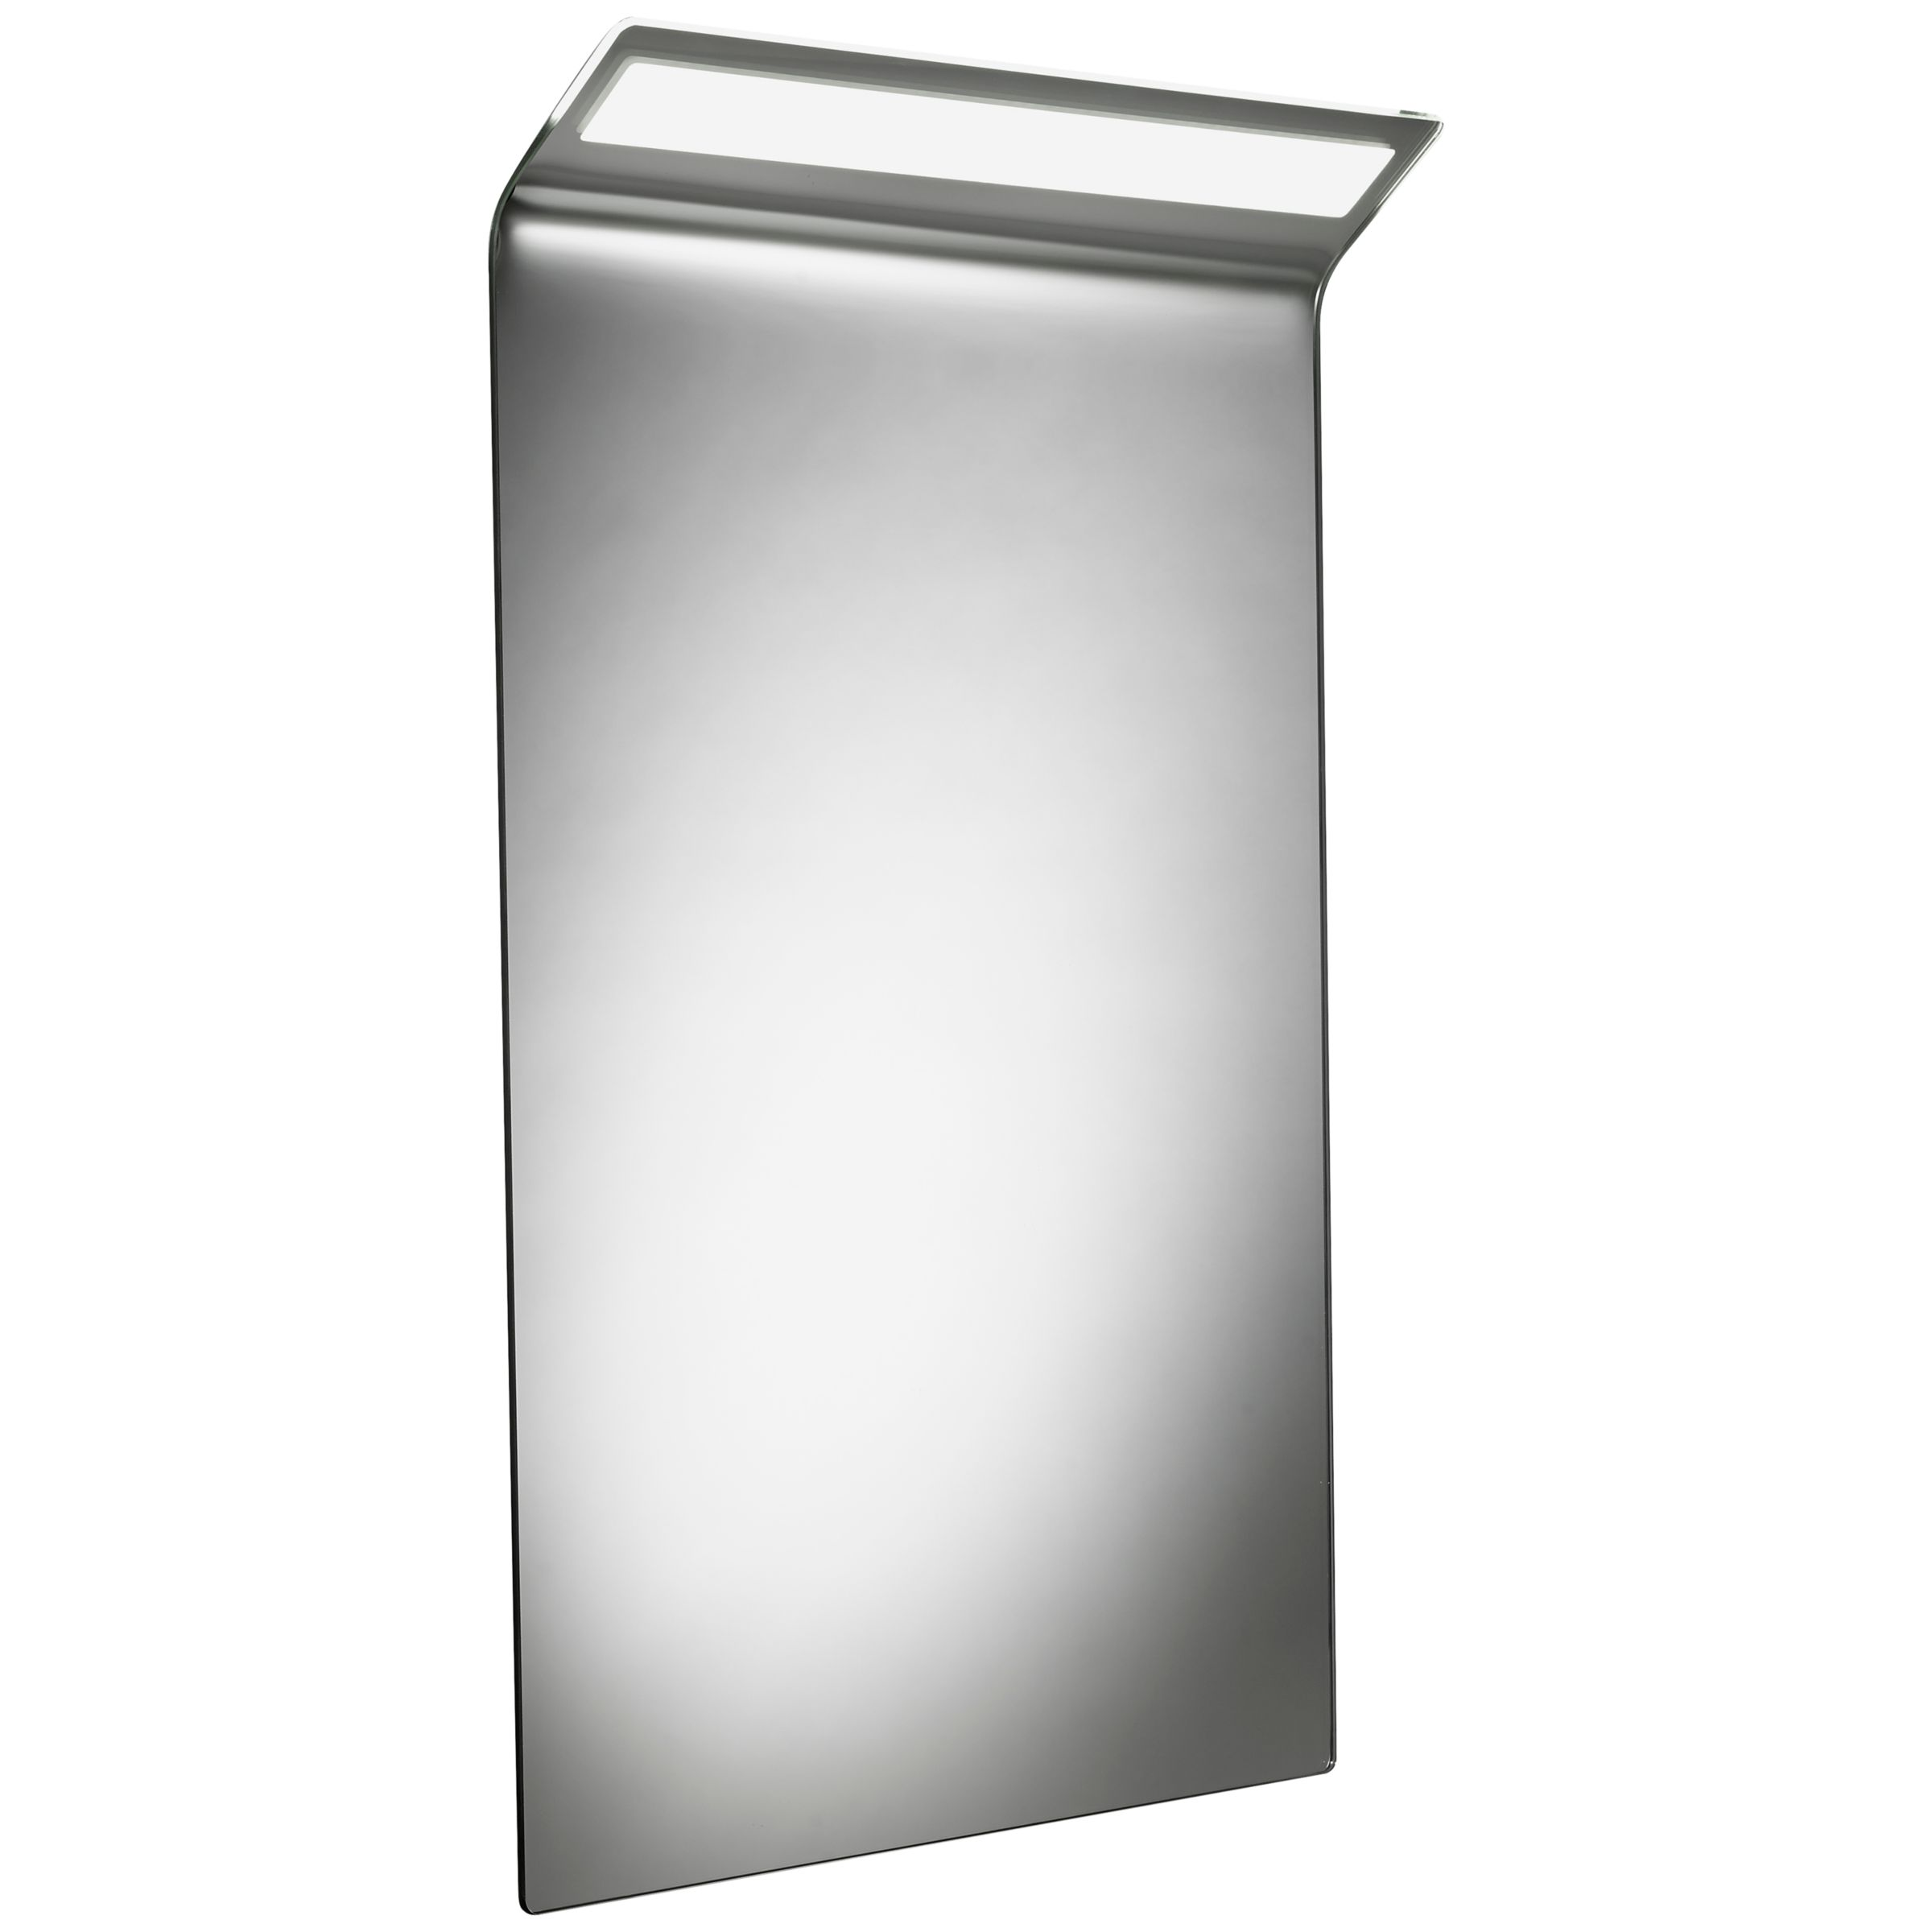 Roper Rhodes Roper Rhodes Renew Illuminated LED Bathroom Mirror